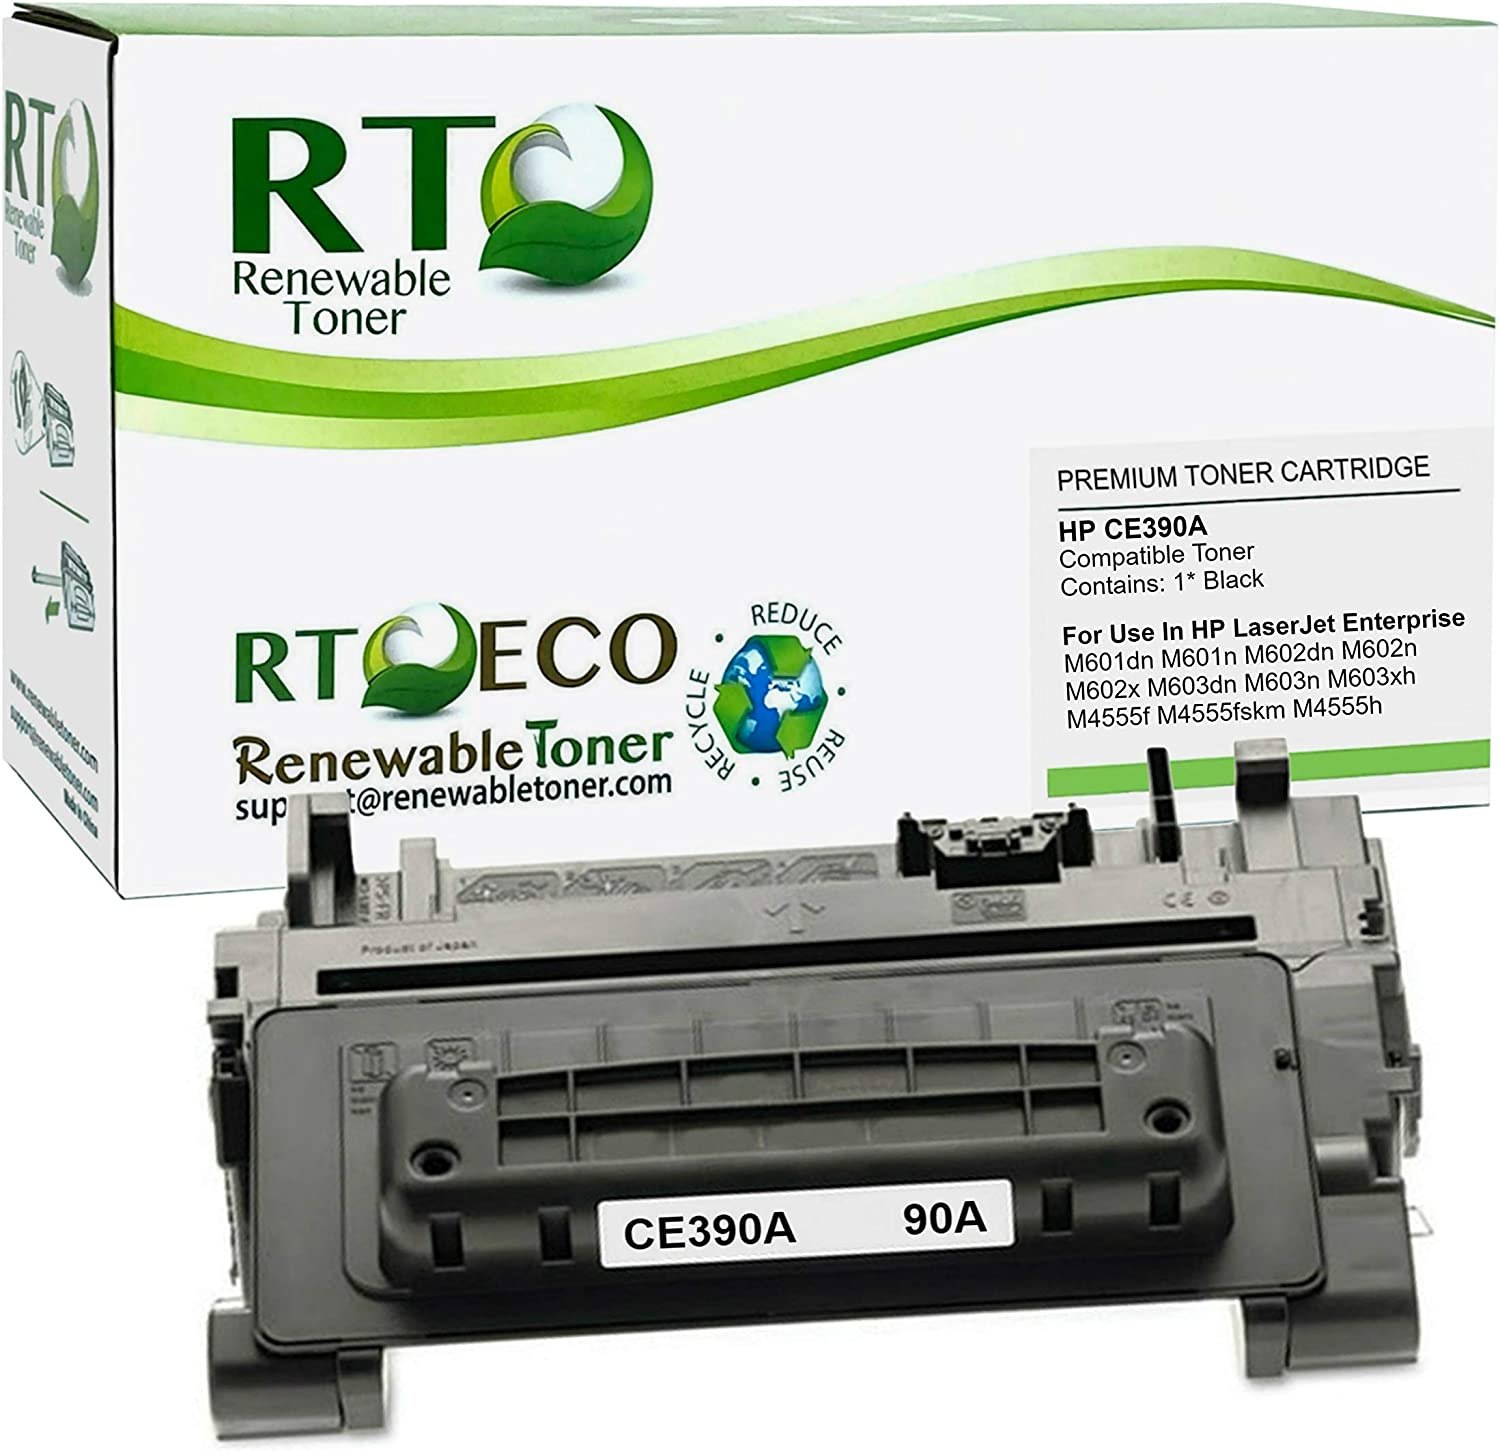 Renewable Toner Compatible Toner Cartridge Replacement for HP 90A CE390A Laserjet Enterprise M601 M602 M603 M4555